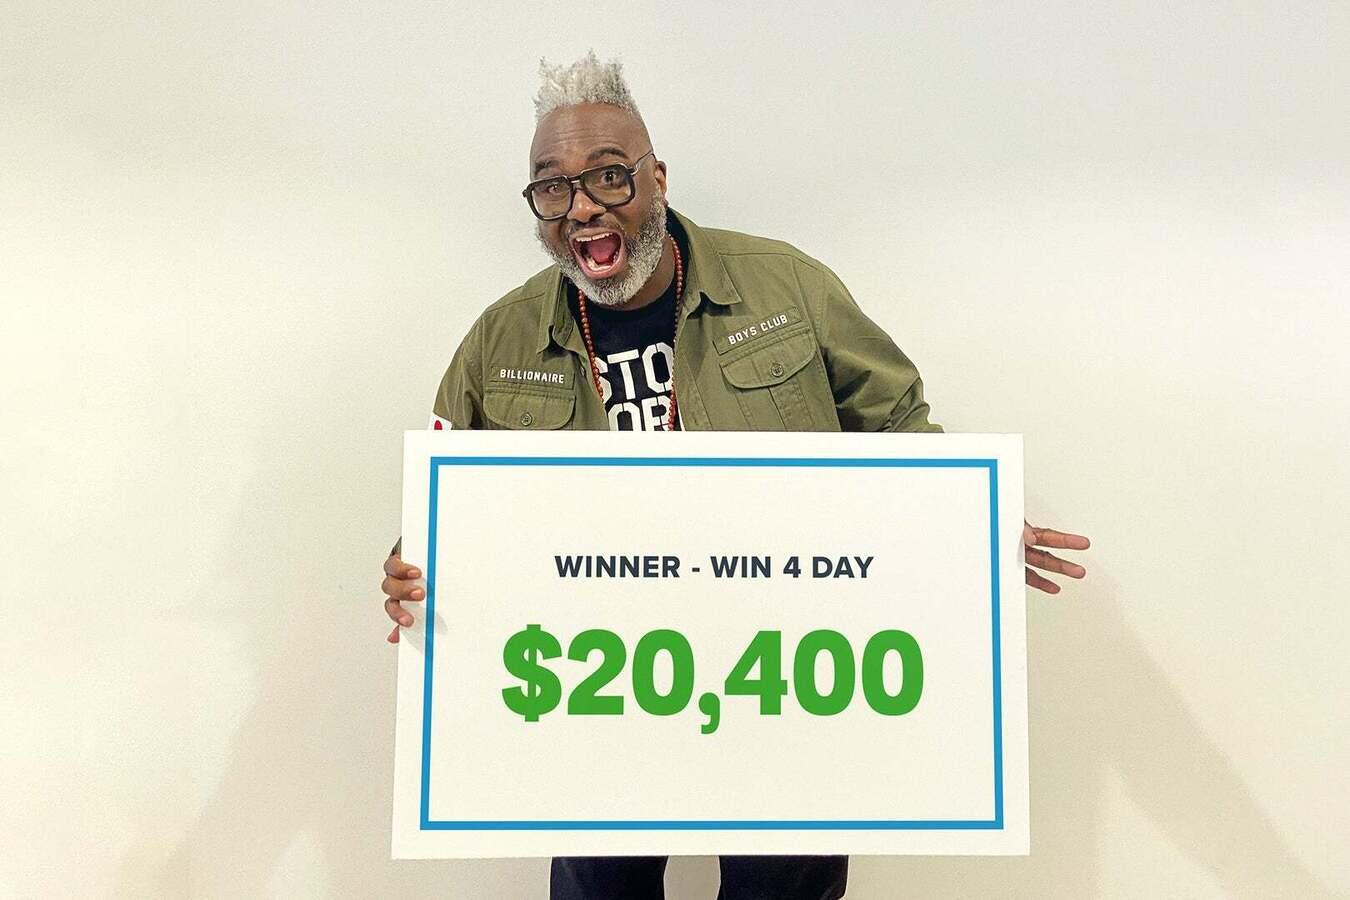 Colin won $20,400 playing Win4 on Jackpocket